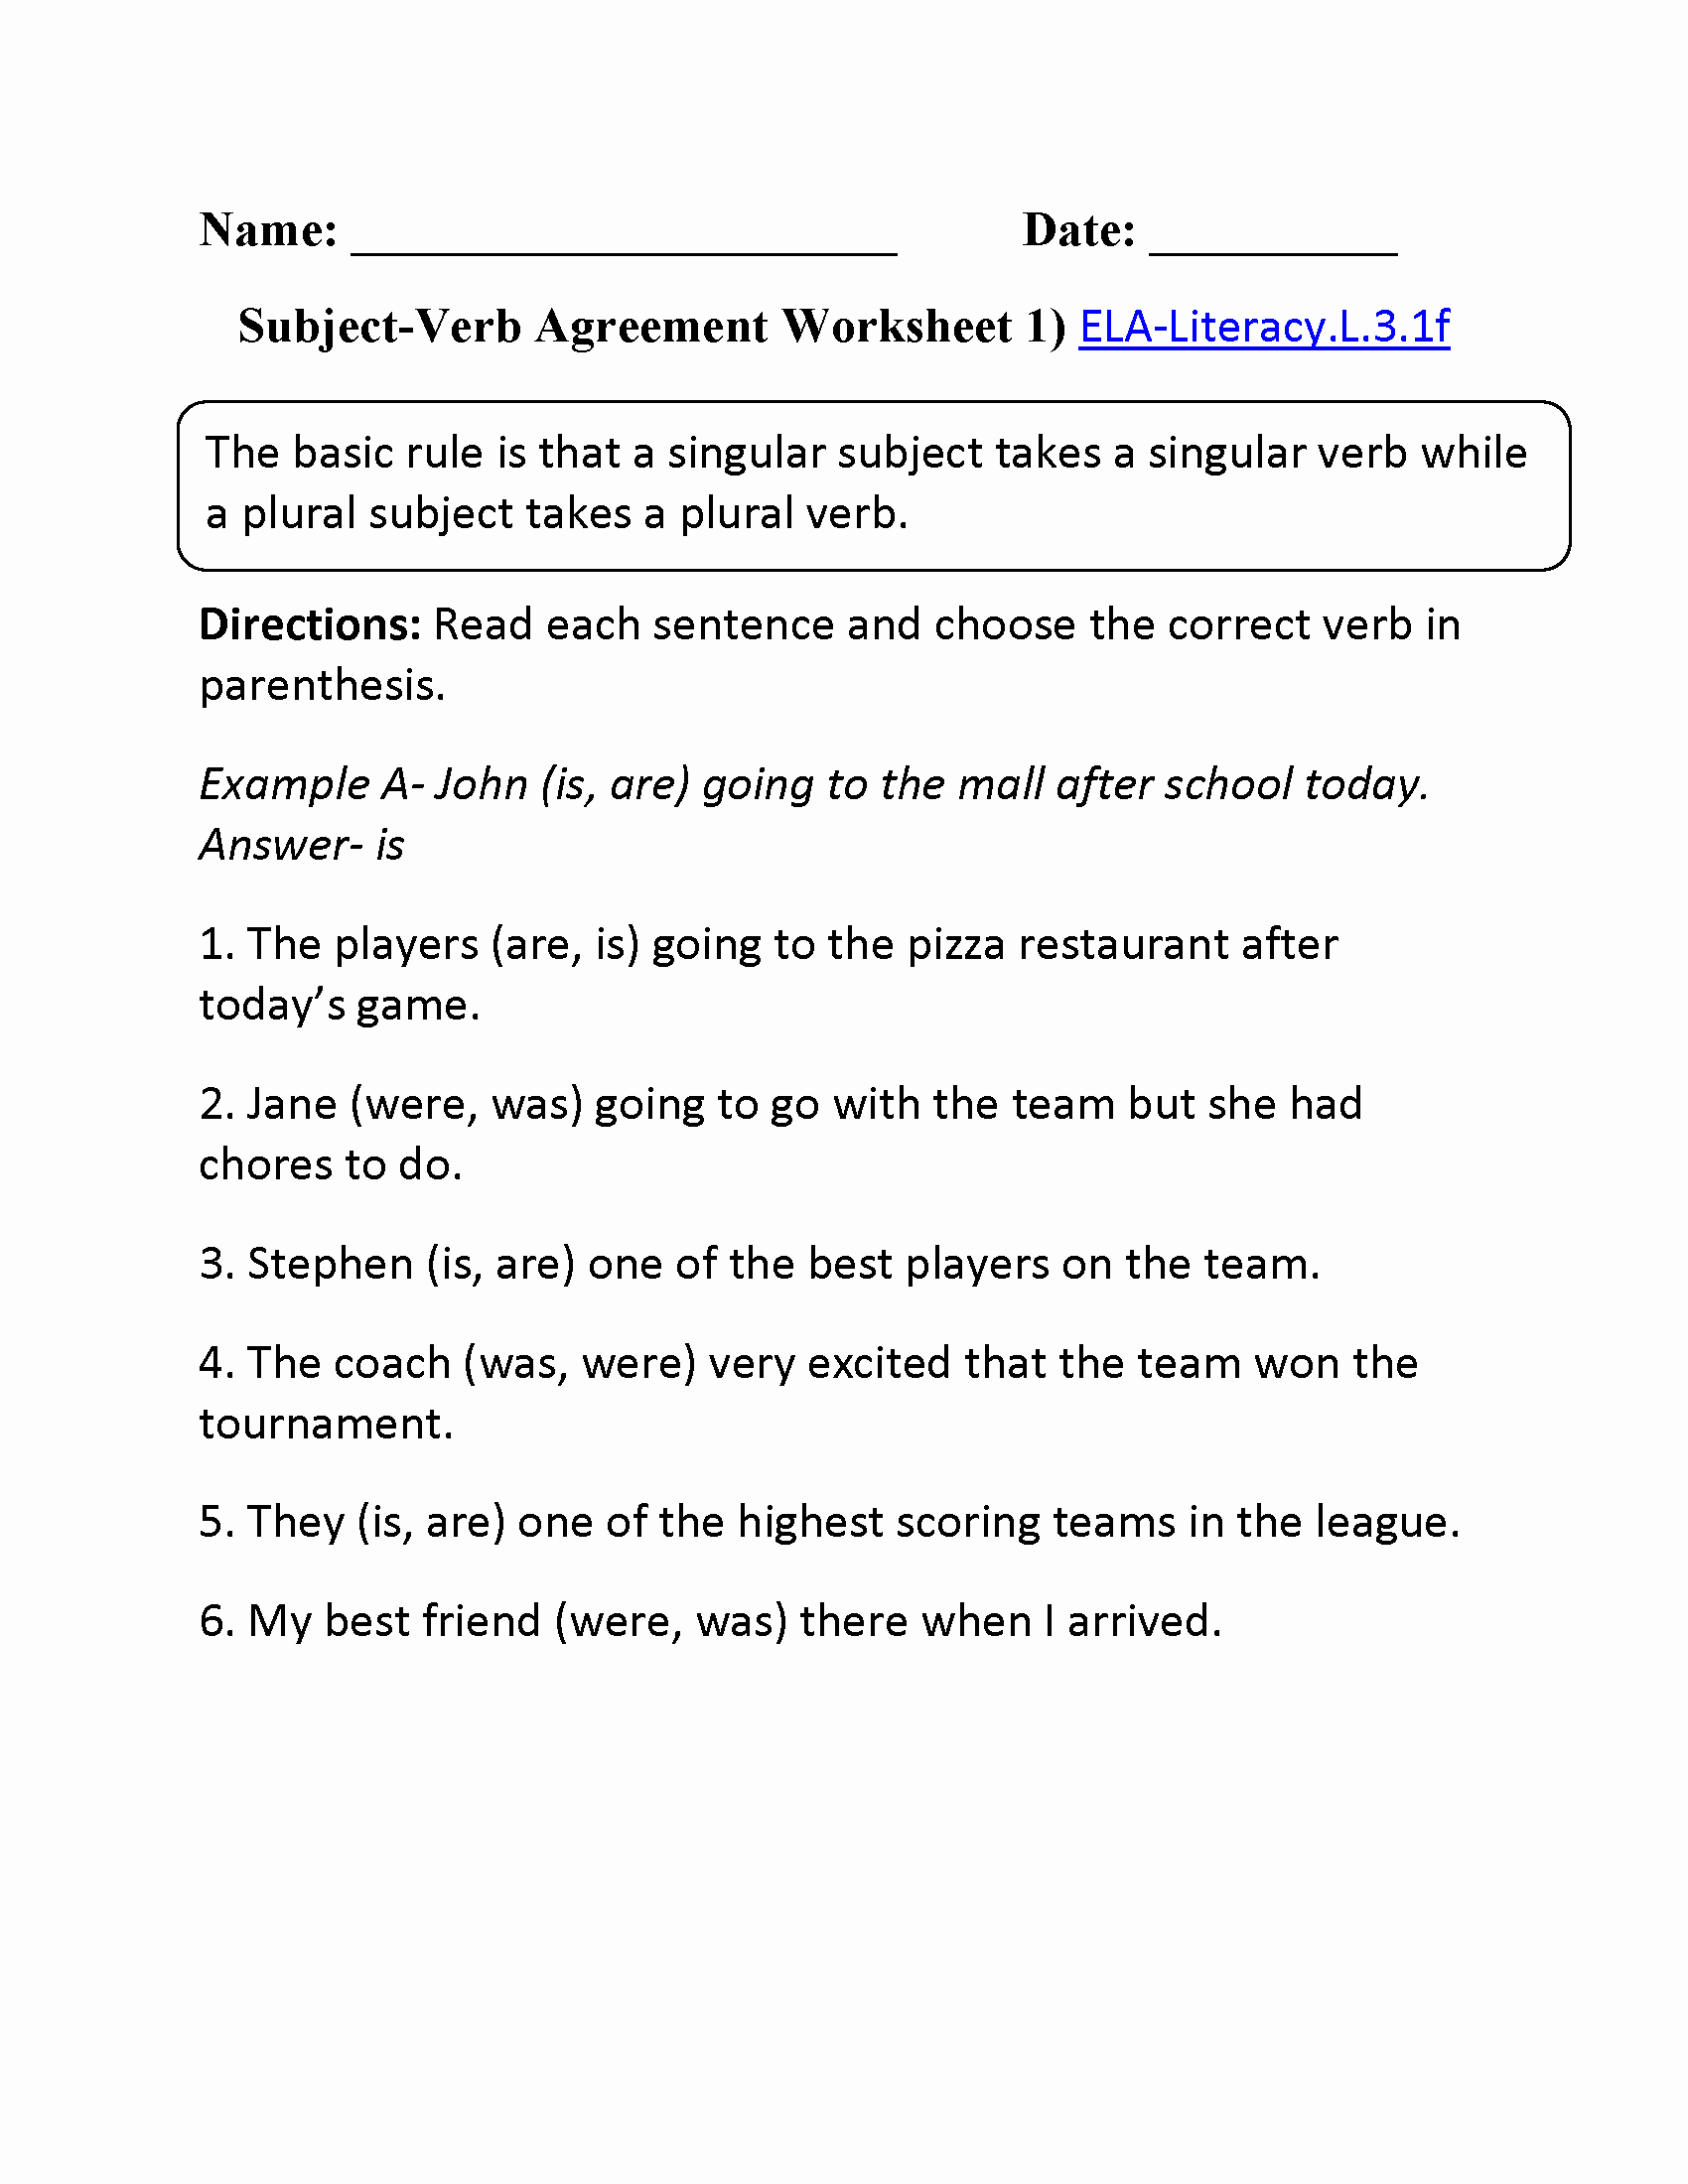 Subject Verb Agreement Worksheet Beautiful Subject Verb Agreement Worksheet 1 Ela Literacy L 3 1f